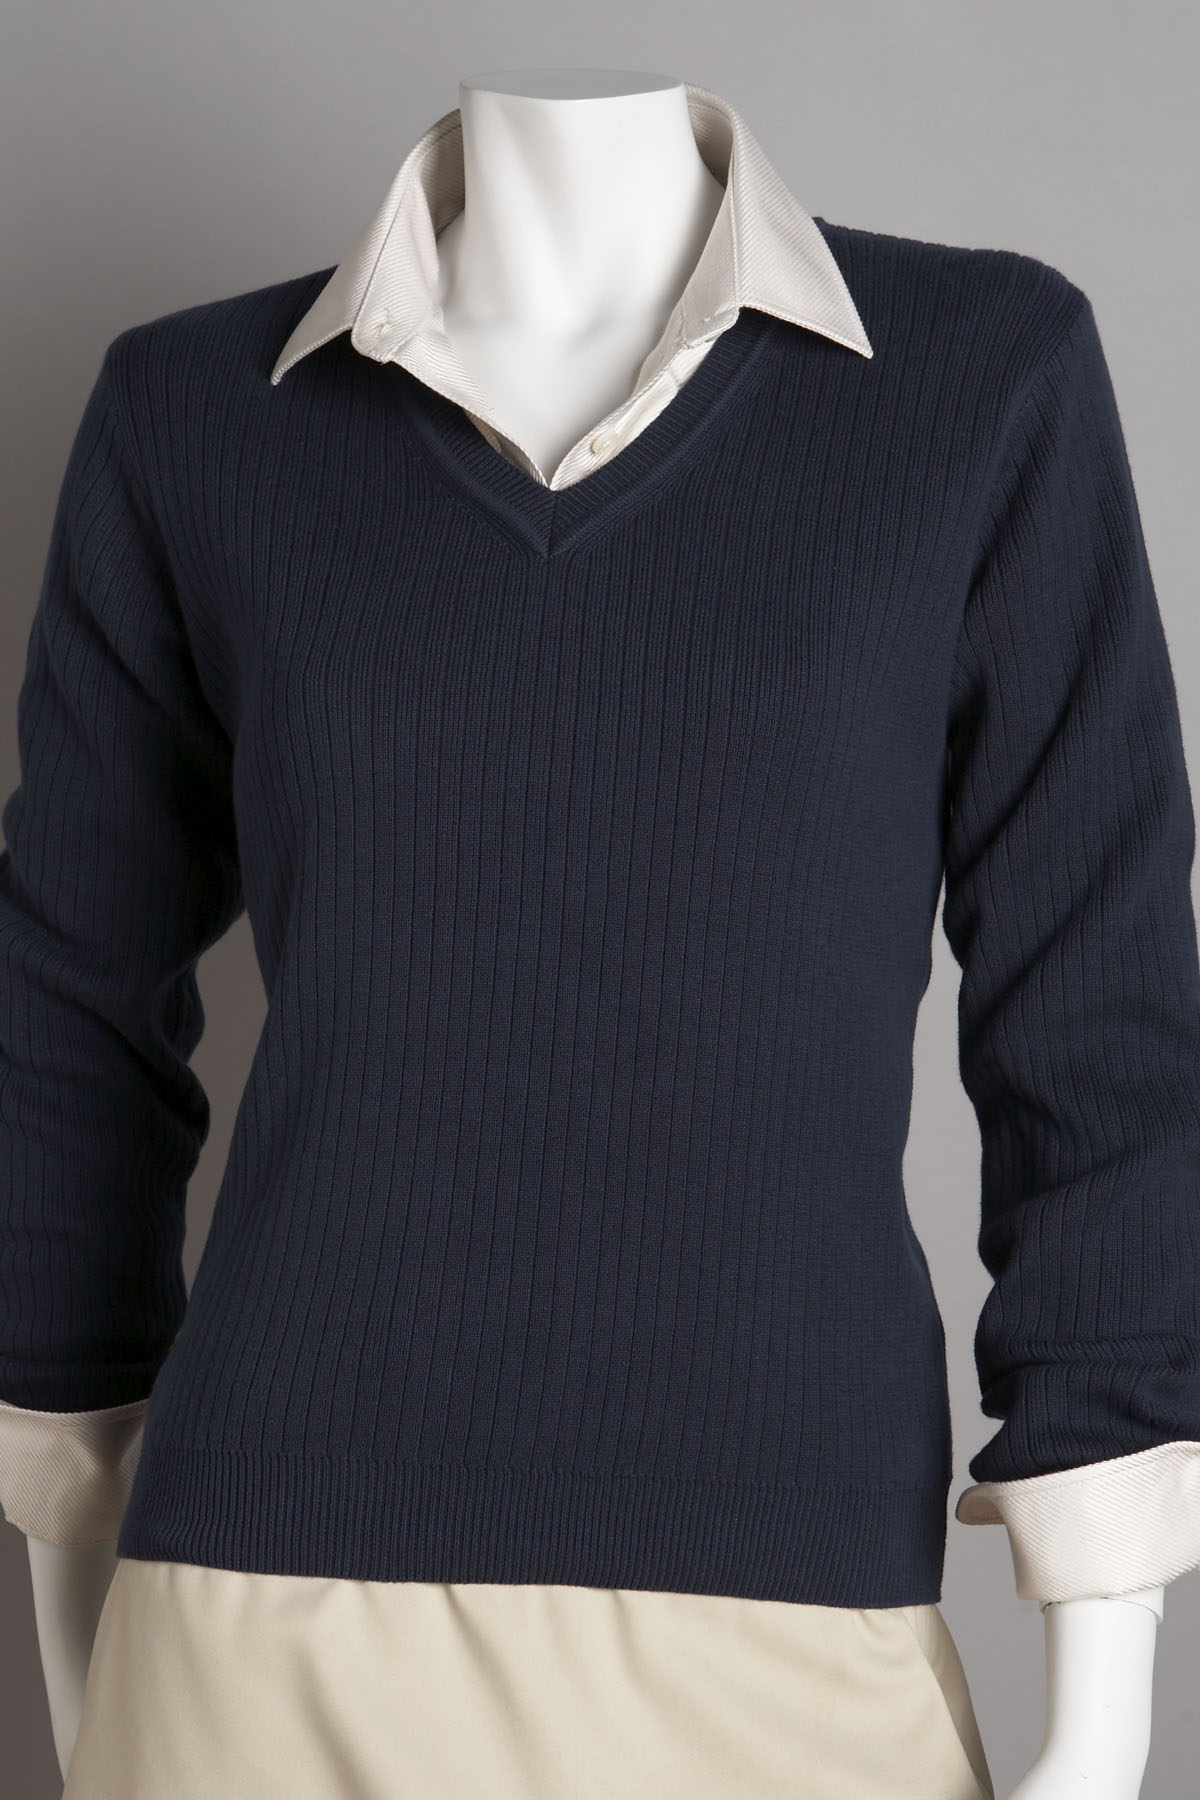 Greg Norman WNS9S420 - Women's V-Neck Drop-Needle Sweater